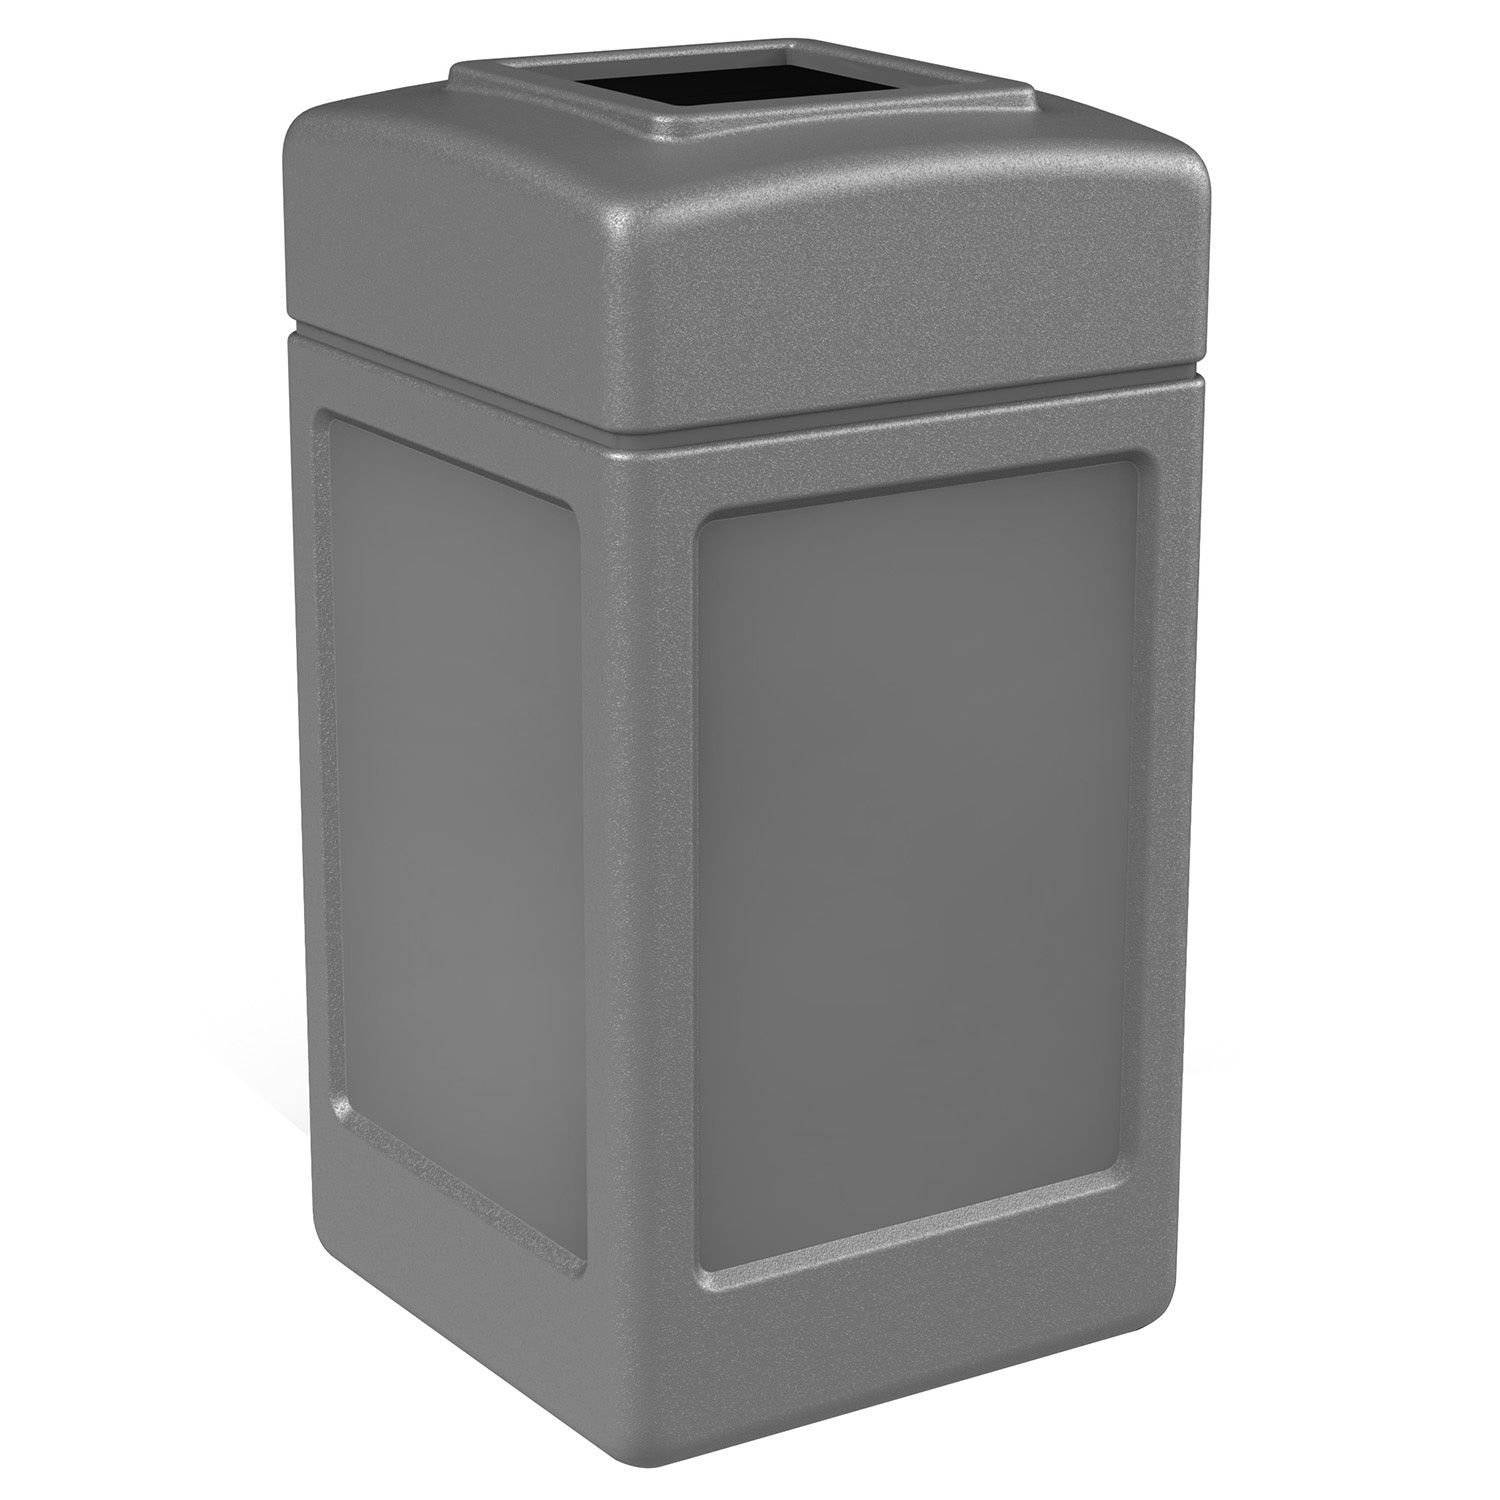 Trash Can, Garbage Commercial Square Waste Container, Open Top Lid, Polyethylene, 42-gal, Gray, Industrial by Trashco